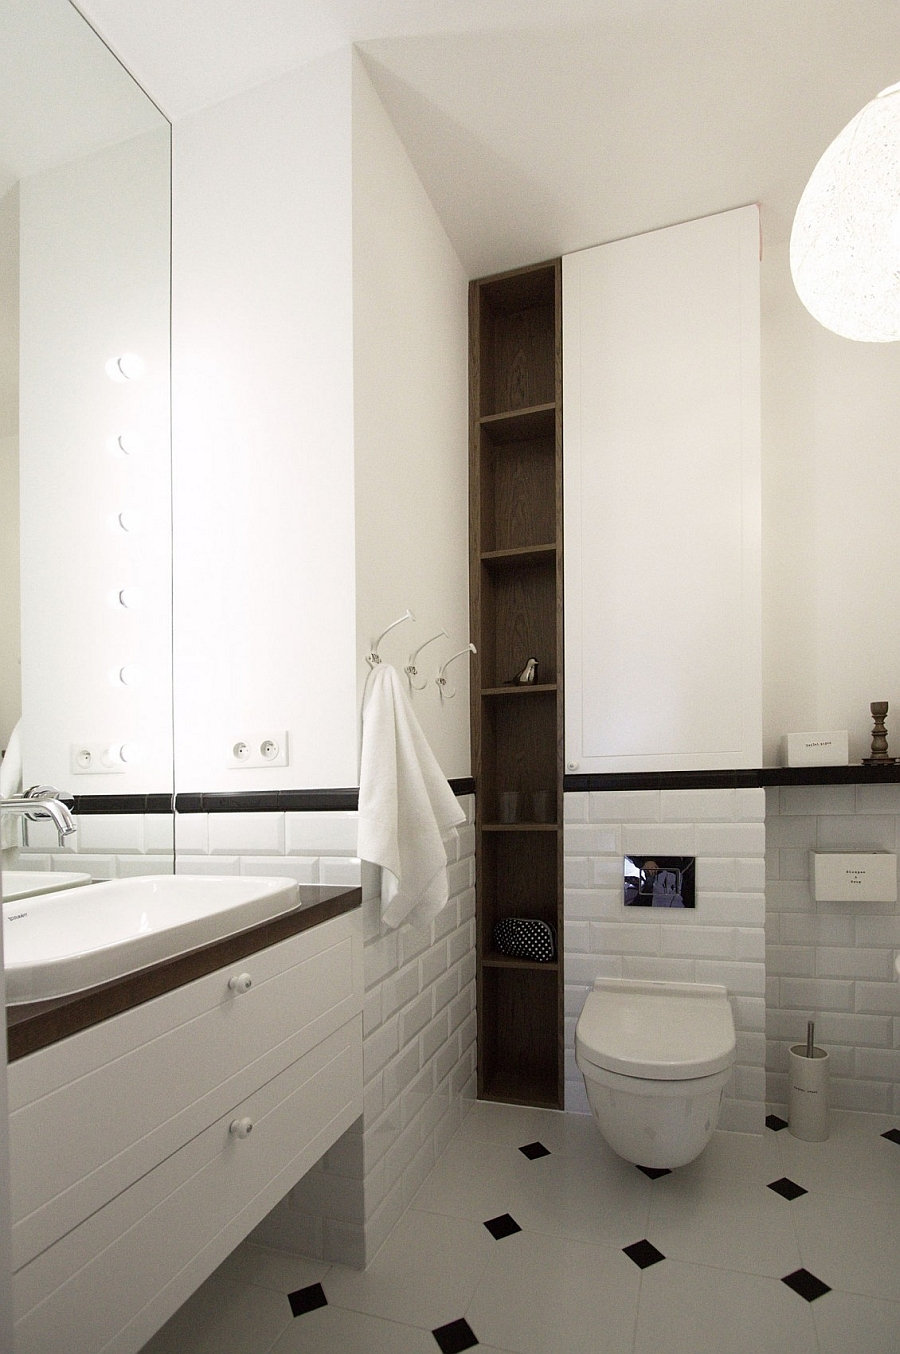 Scandinavian style bathroom with sleek corner shelves